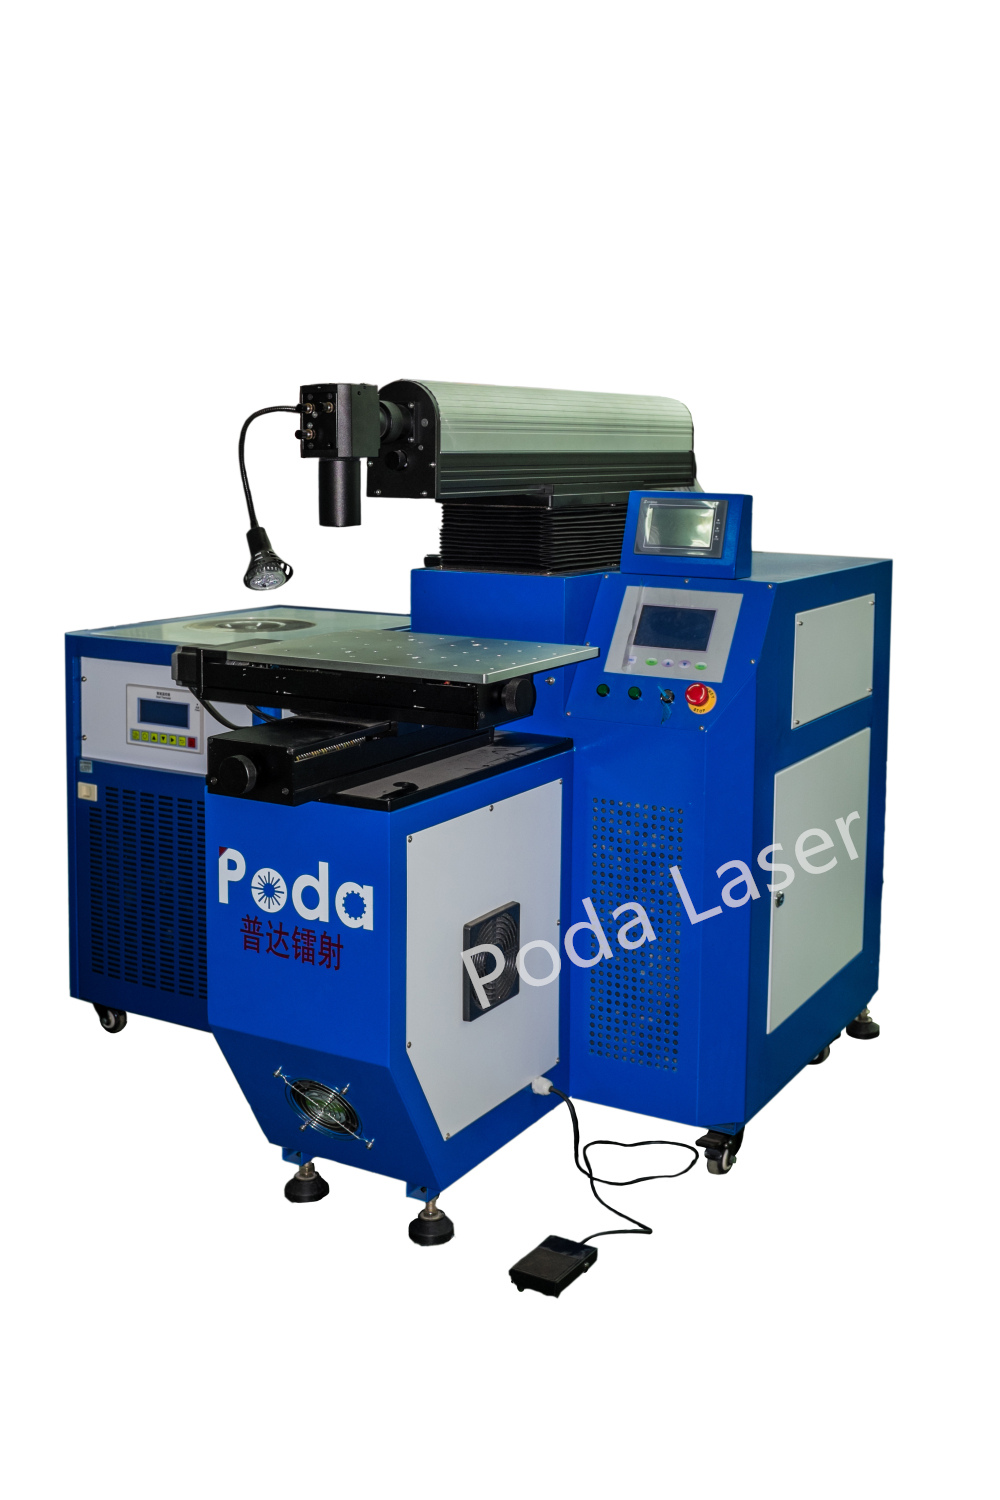 Automatic Laser Welding Machine PD-R200/R400